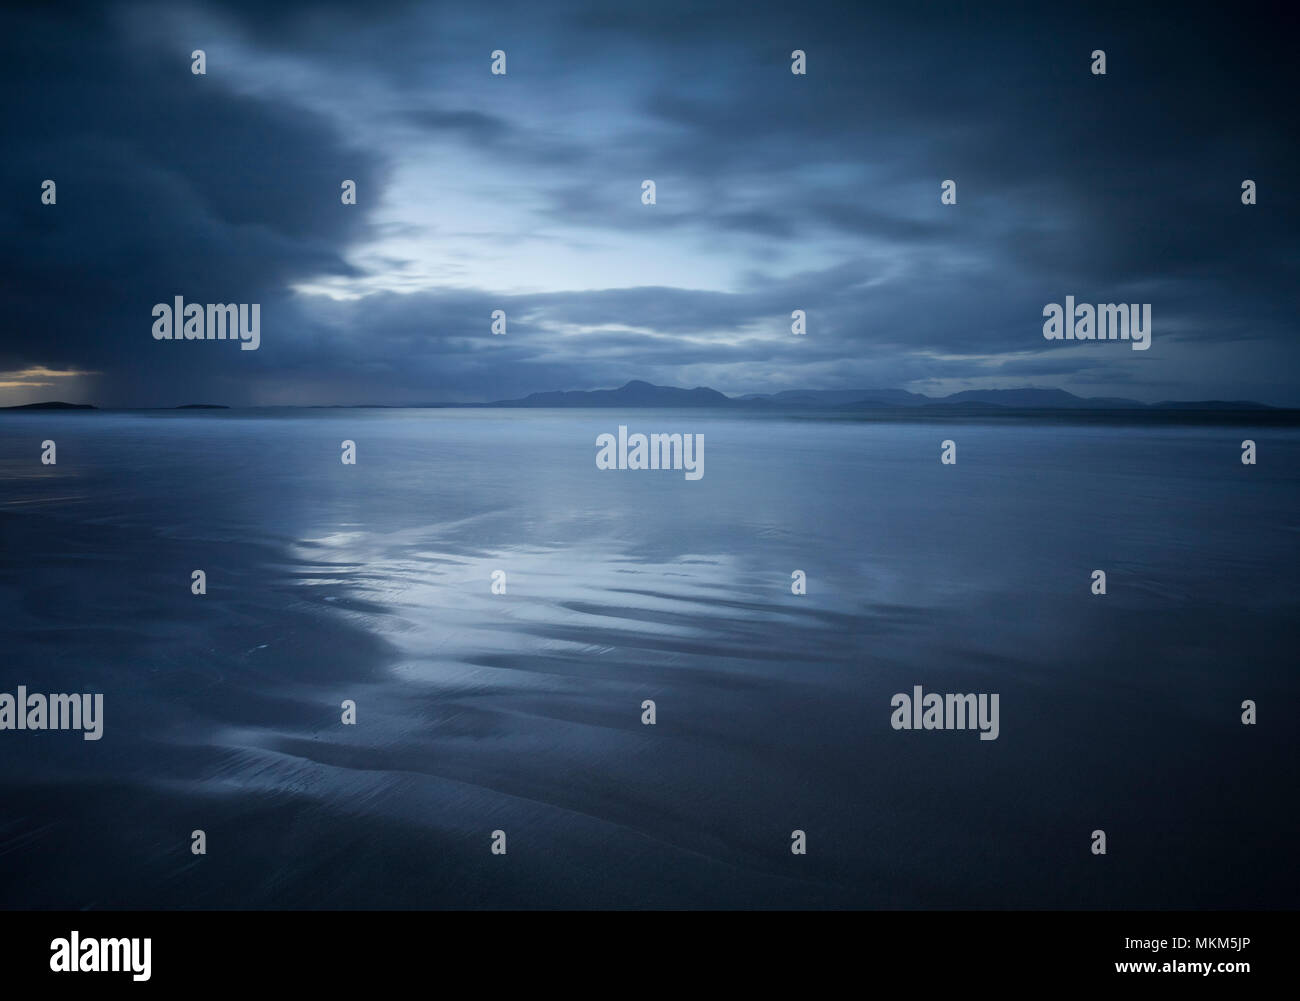 First Light over the beach at Mulranny Co Mayo, Ireland - Stock Image